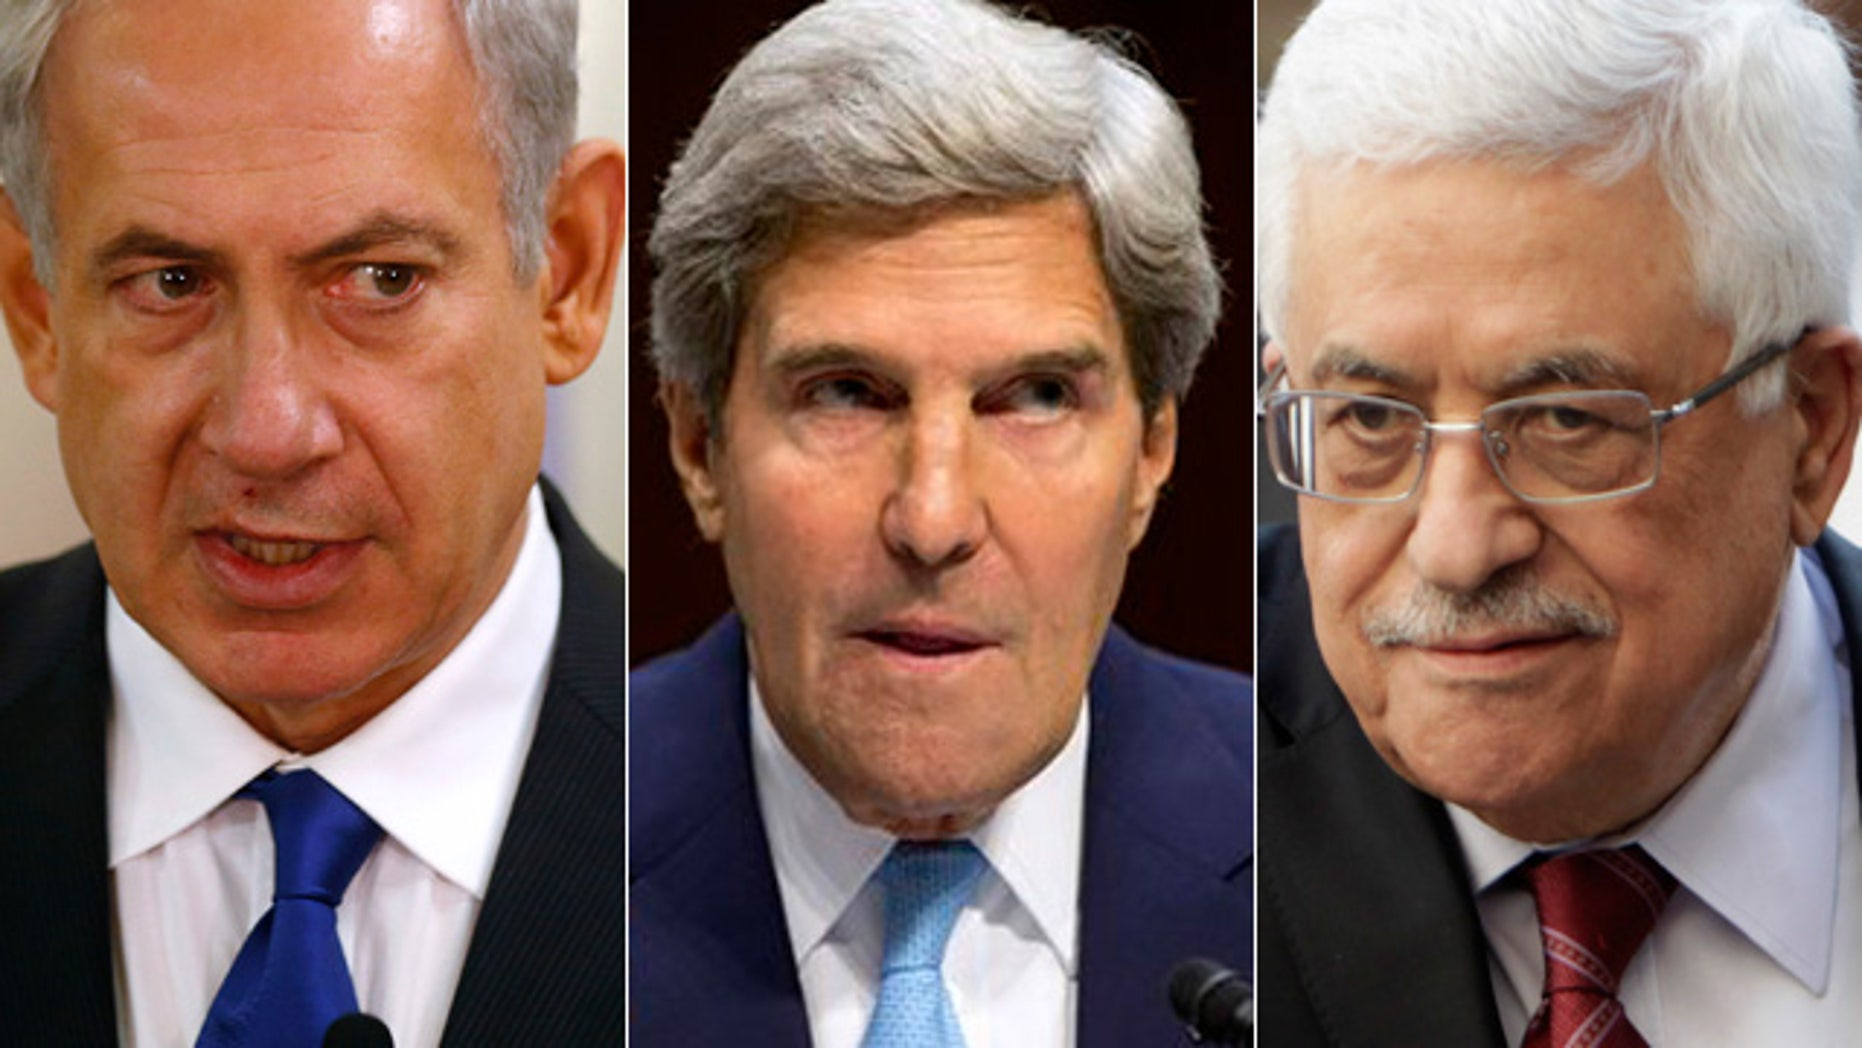 From left to right, Israeli Prime Minister Benjamin Netanyahu, Secretary of State John Kerry and Palestinian President Mahmoud Abbas.